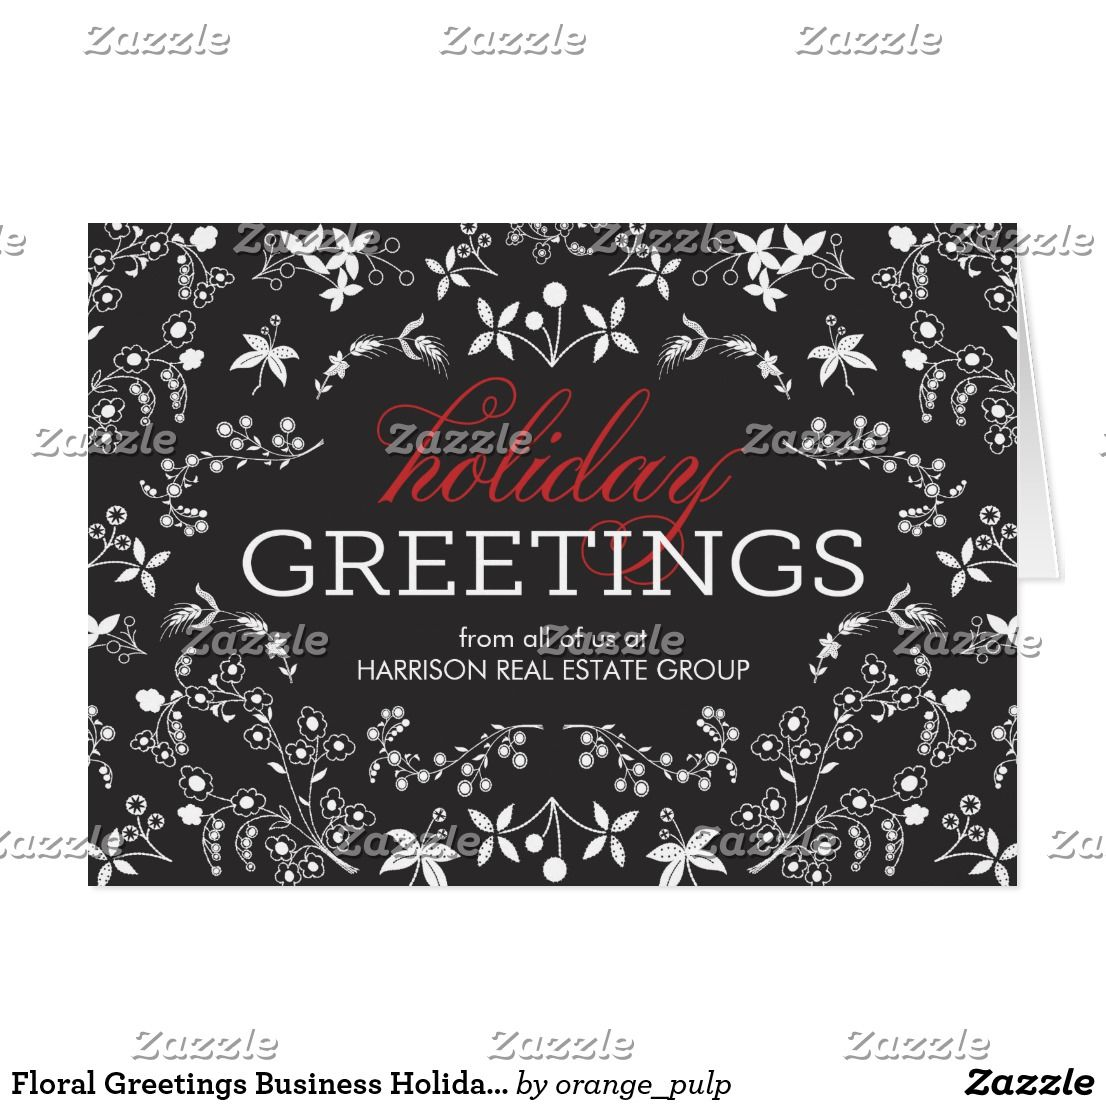 Floral greetings business holiday greeting card happy holidays floral greetings business holiday greeting card spread some joy this holiday season with these chic and stylish holiday cards from orange pulp designs m4hsunfo